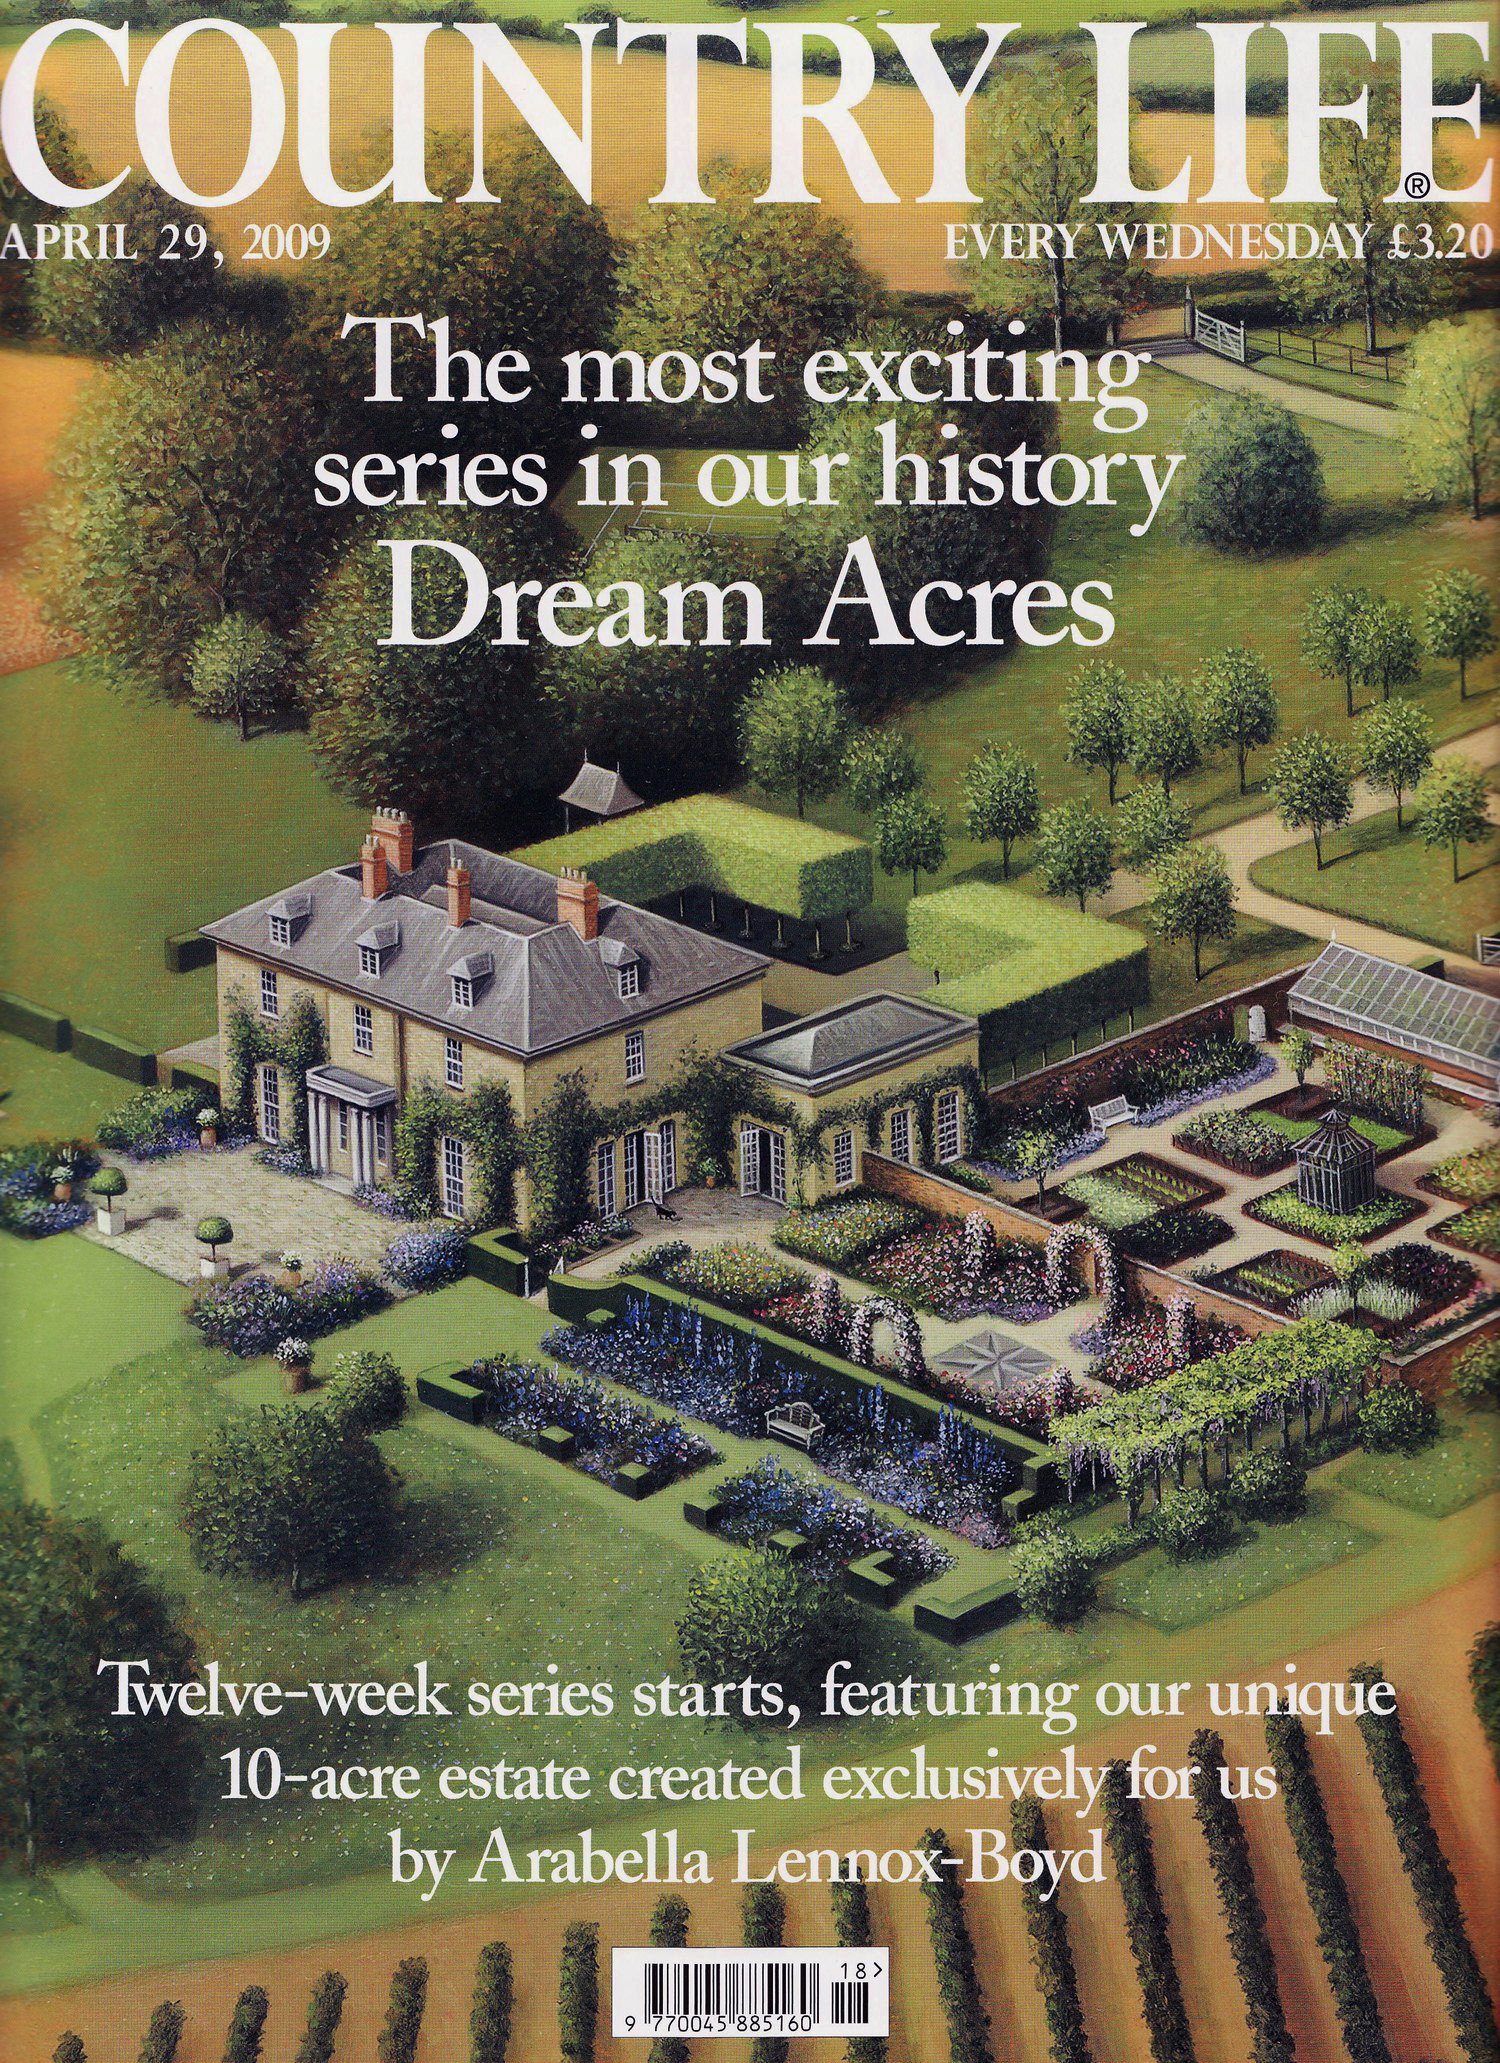 Jonathan Myles-Lea was commissioned by the editors ofCountry Life Magazine to produce this visualisation in oils of a ten-acre garden by the award-winnning garden designer Lady Arabella Lennox-Boyd. The series 'Dream Acres' ran in the magazine for 12 weeks. It is the only time in the magazine's history that a painting has been commissioned for its front cover. The whole image also ran as a double gate-fold image in the centre of the magazine.